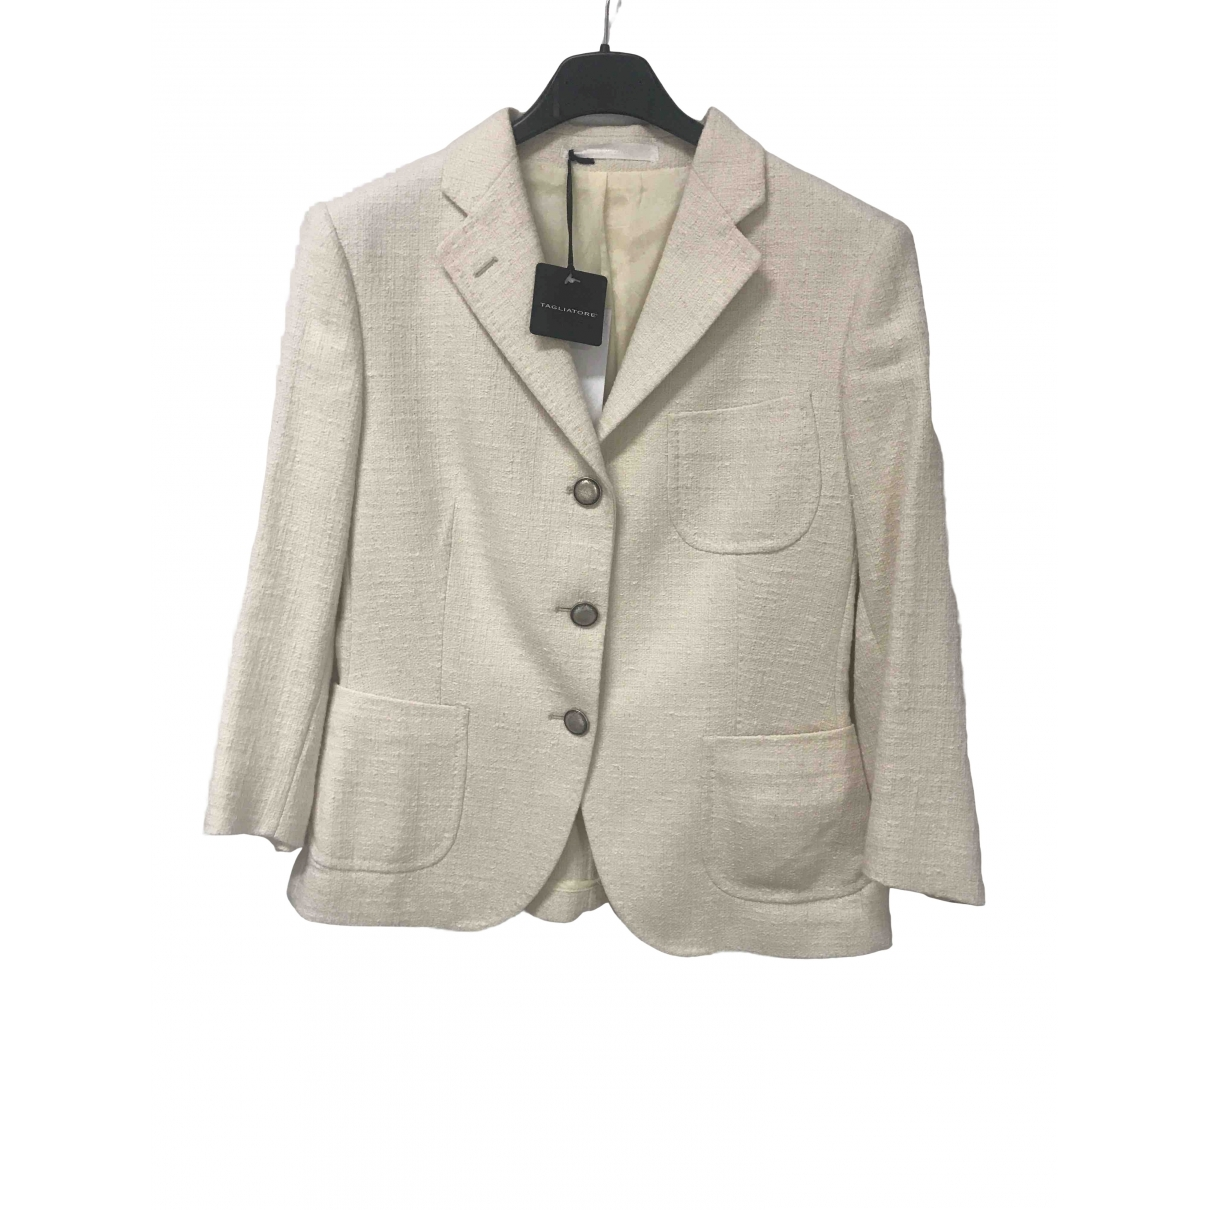 Tagliatore \N Beige Cotton jacket for Women S International